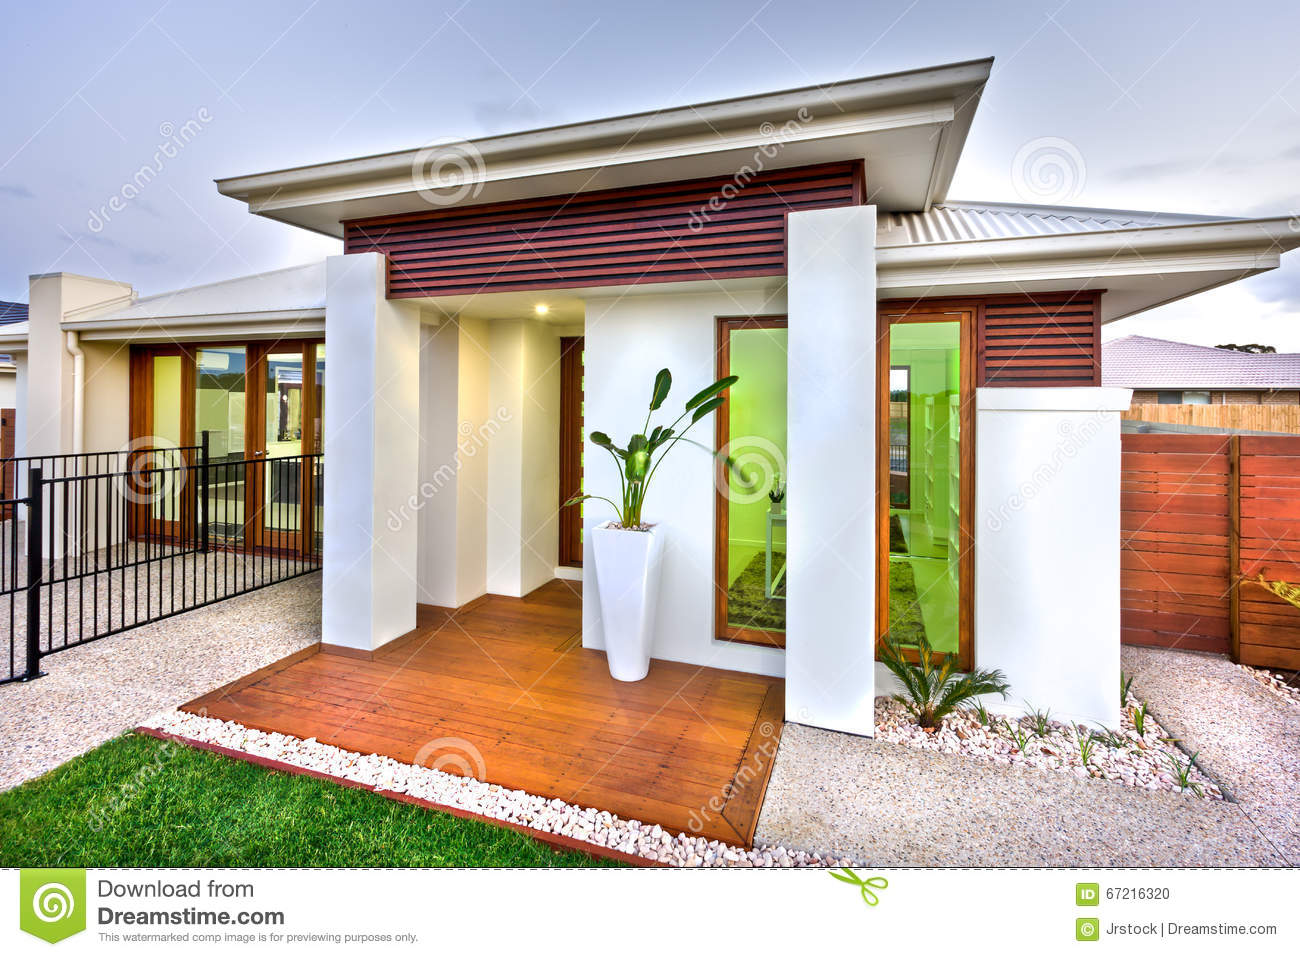 Modern House ntrance With Wooden nd oncrete Yard With Law ... - ^